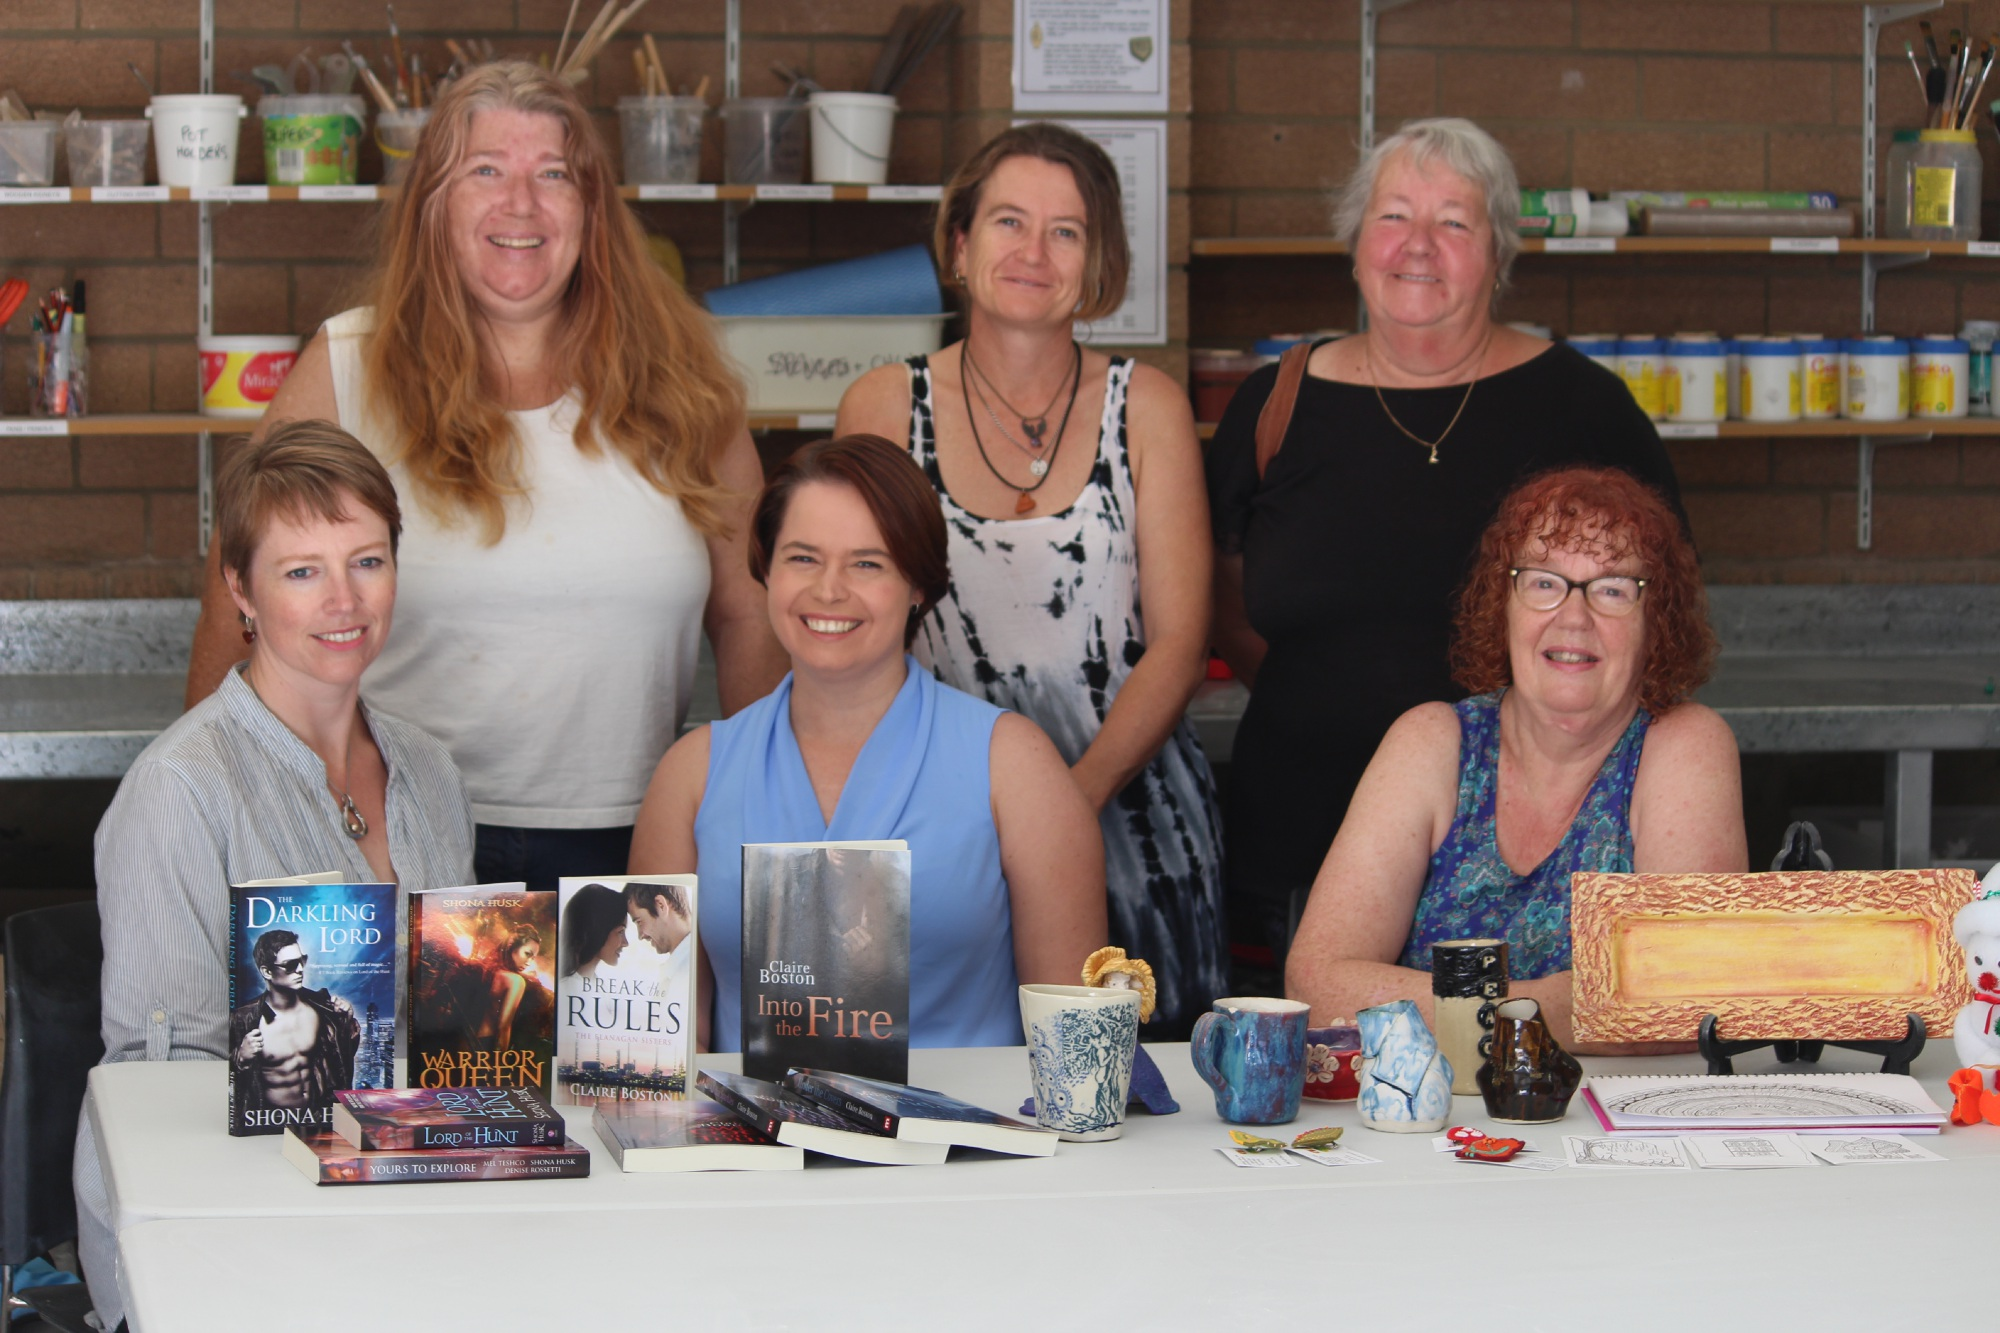 (Back, l-r) Ceramics artists Bec Thomas, Tanya Beavan and artist Lyn Berryman, with (front) authors Shona Husk, Claire Boston and artist Lesley Jeffreys. Picture: Declan Byrne